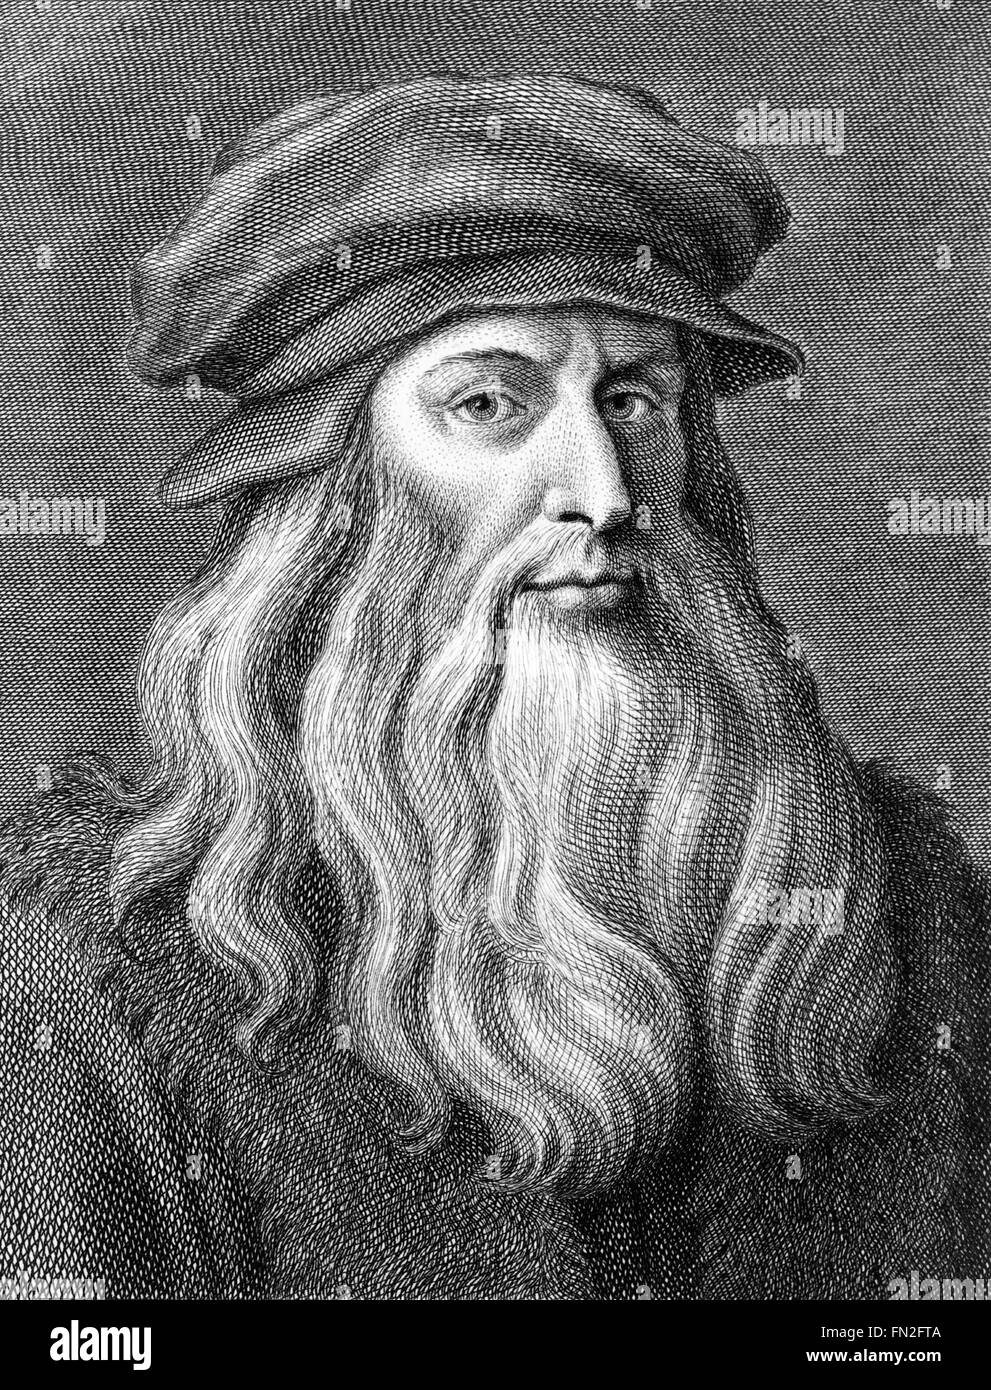 Leonardo da Vinci, portrait engraved by Cosimo Colombini between 1770 and 1810. - Stock Image